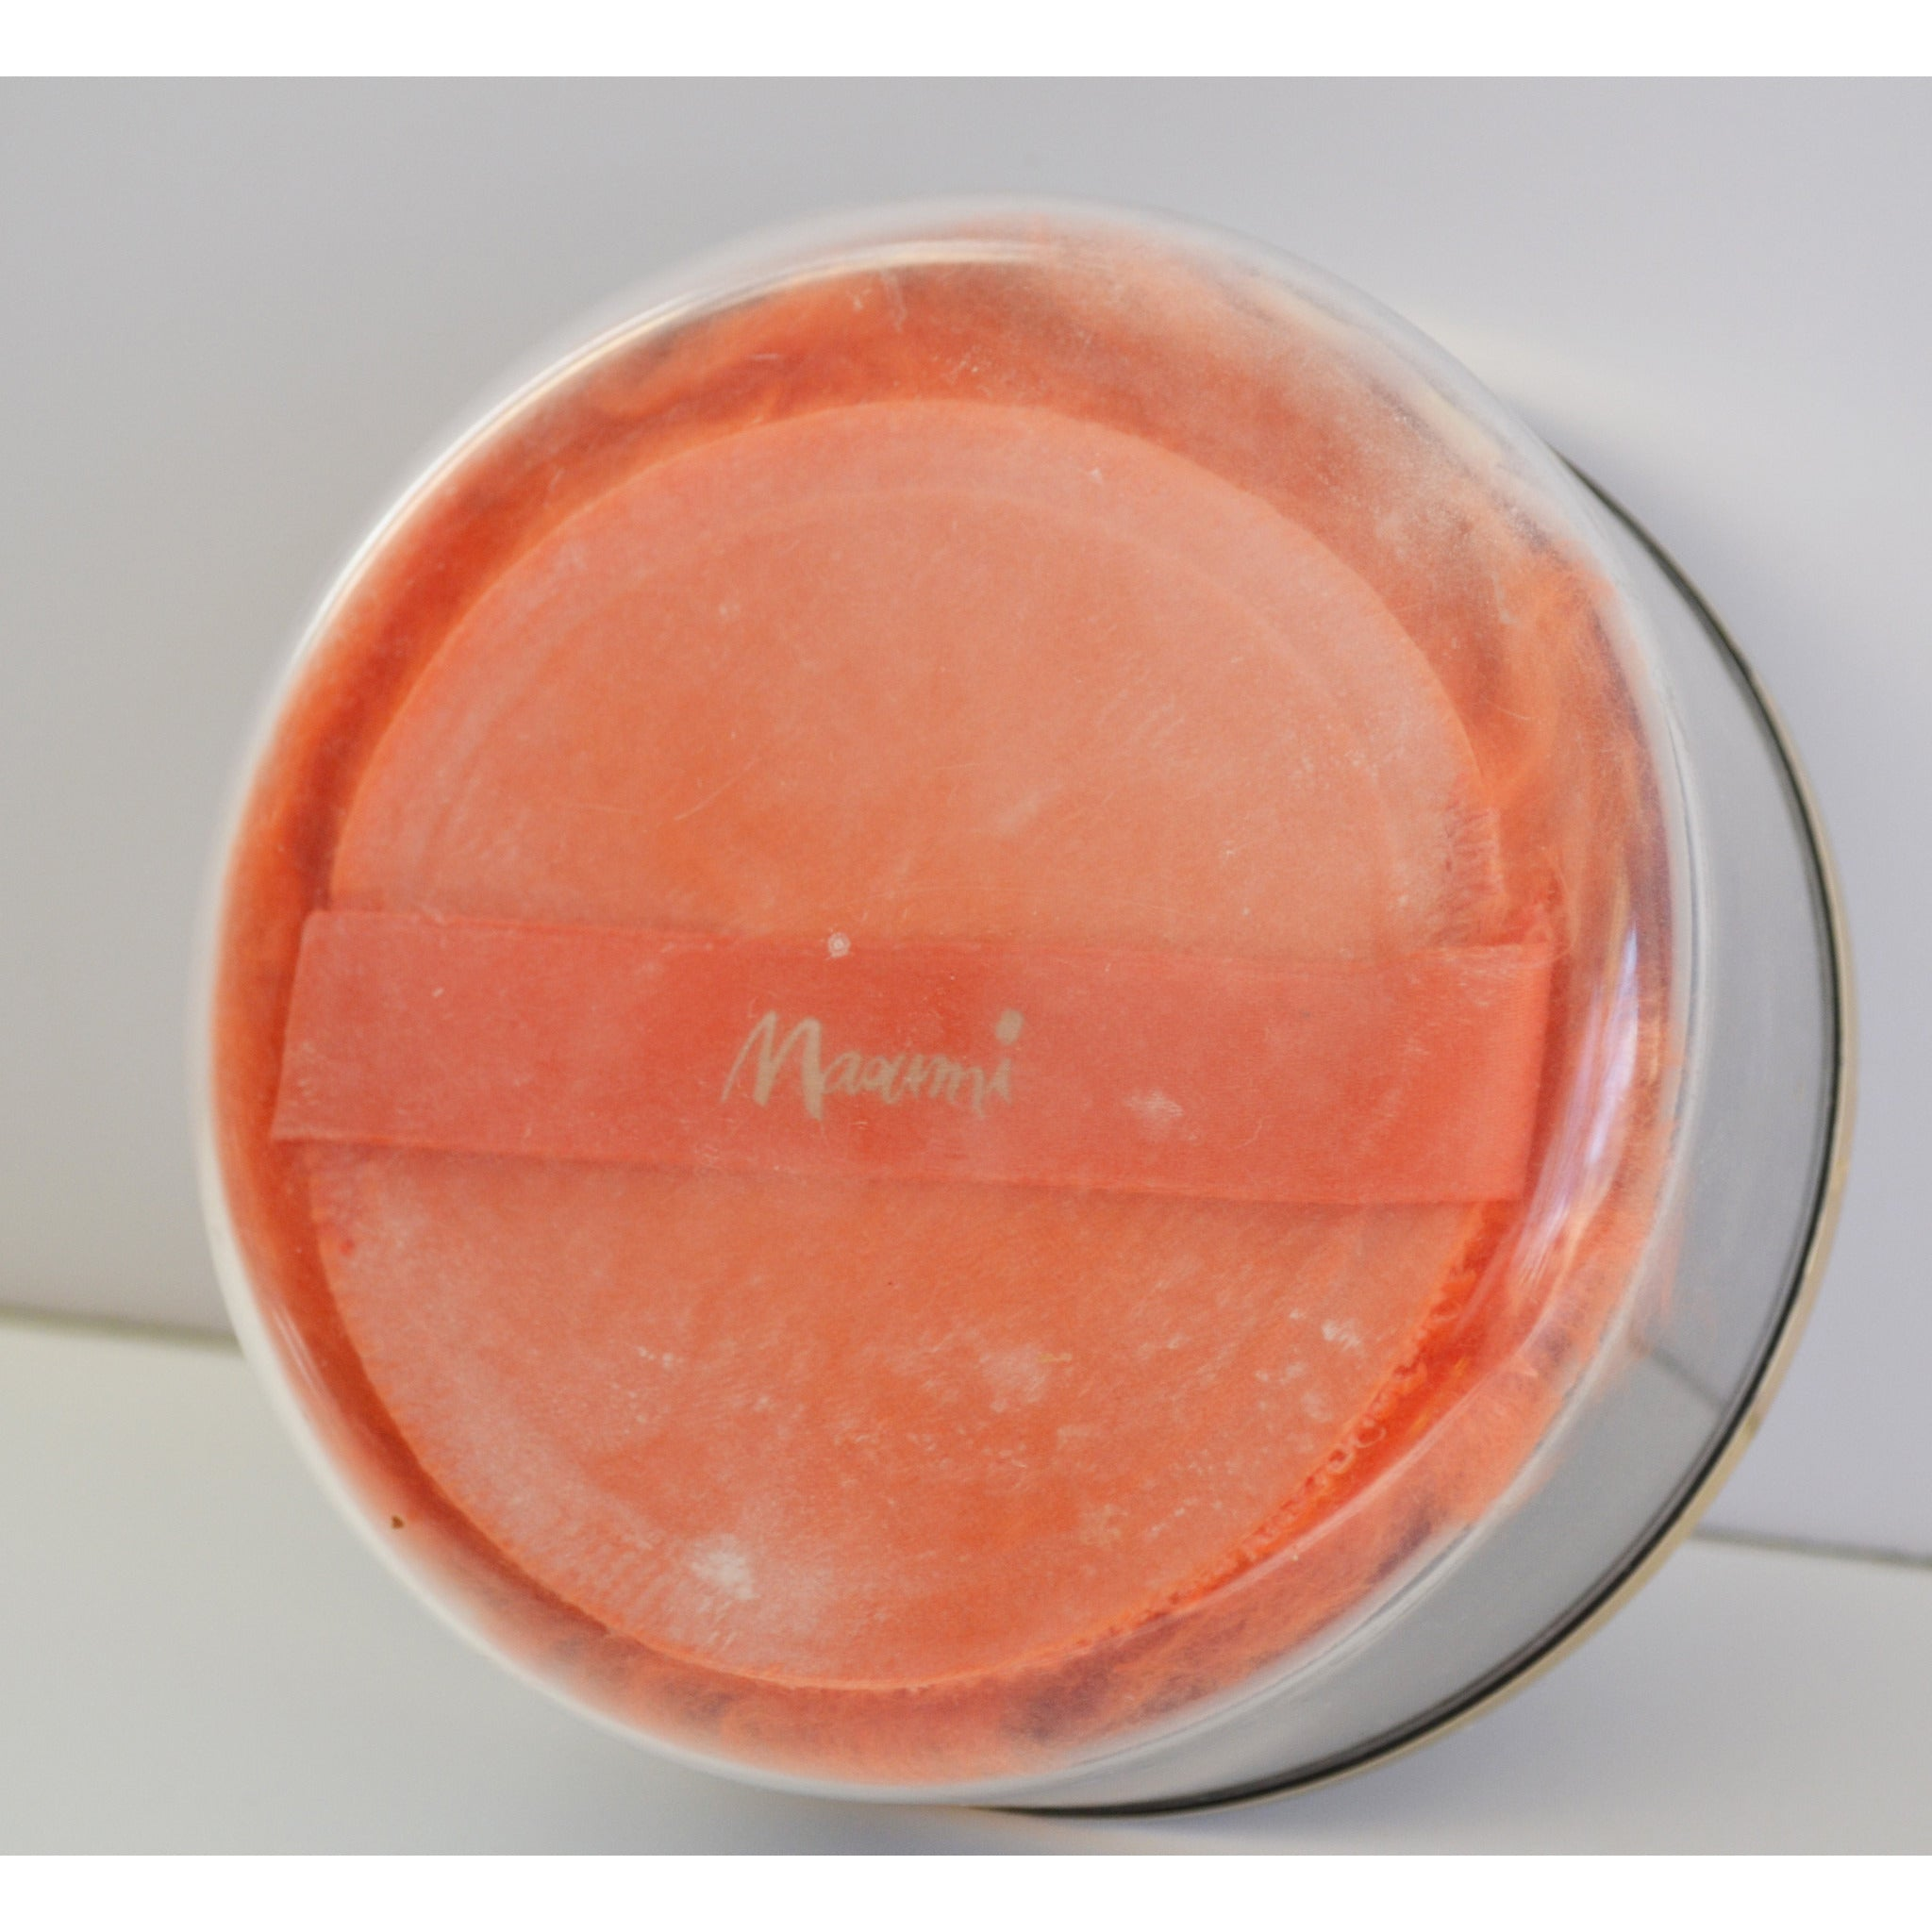 Vintage Masumi Dusting Powder By Coty